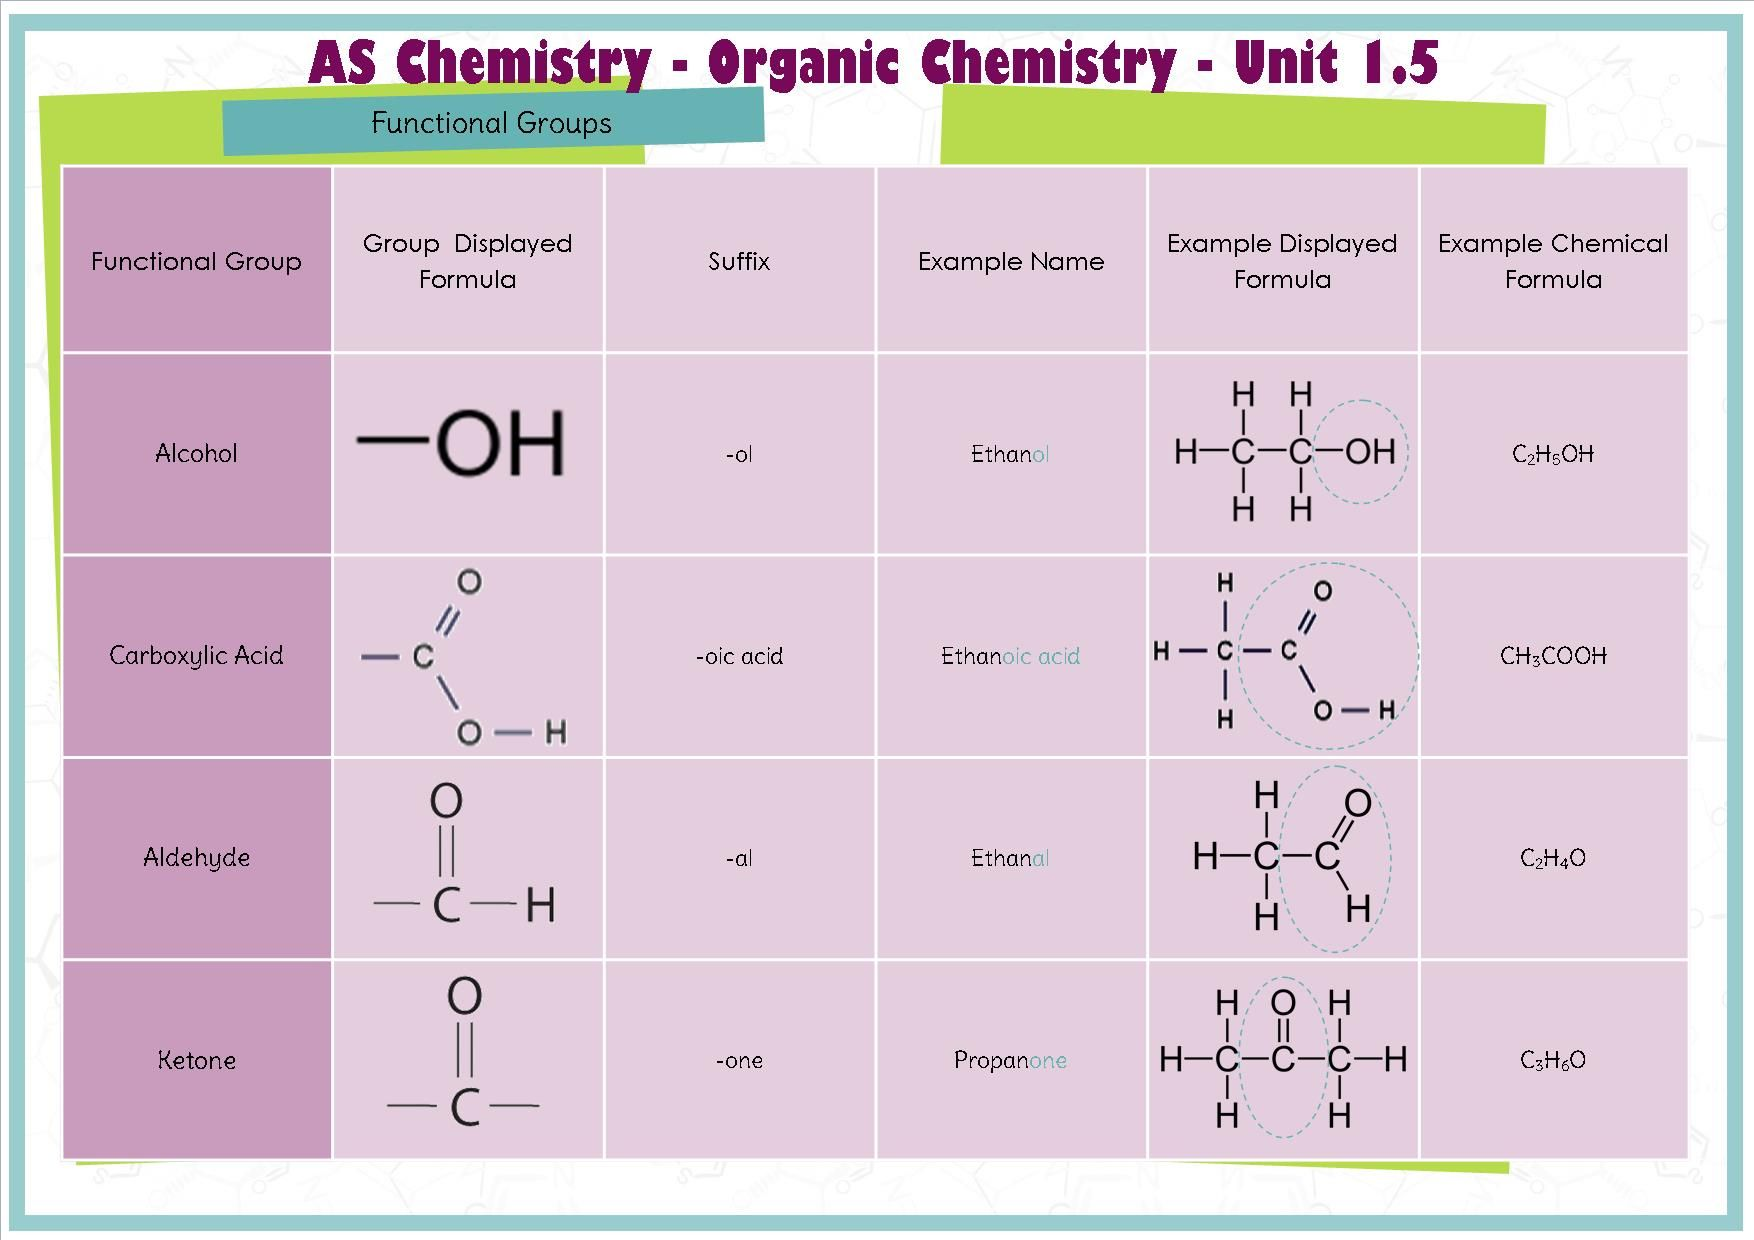 As Chemistry Functional Groups To Download Please Visit Https Www Tes Com Teaching Resource Organic Chemistry Organic Chemistry Chemistry Functional Group